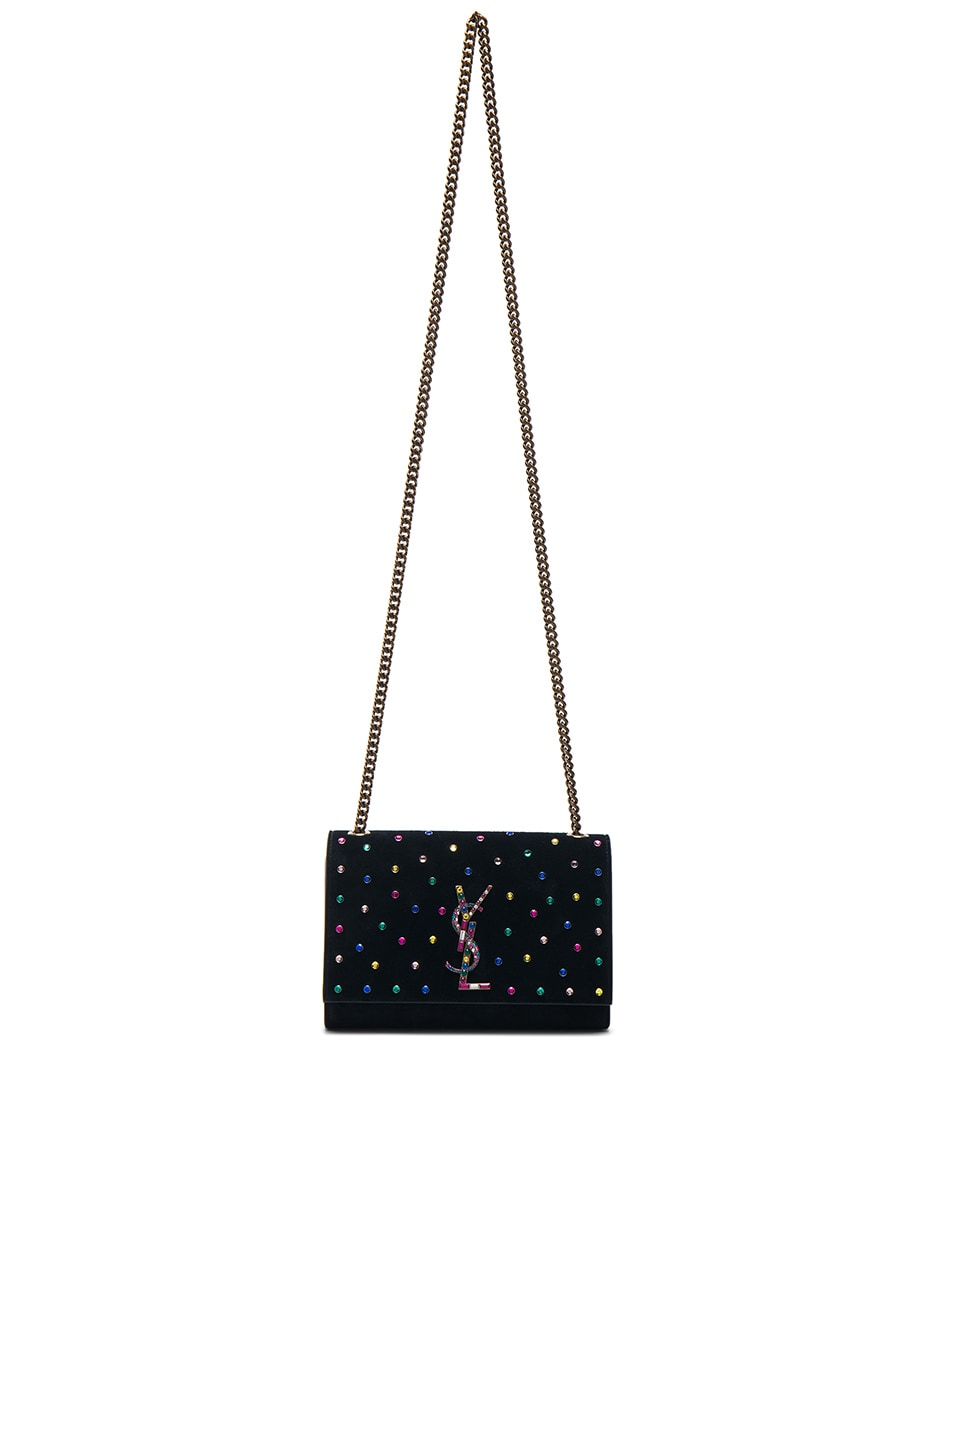 Image 5 of Saint Laurent Small Crystal Embellished Suede Monogramme Kate Chain Bag in Black & Multicolor